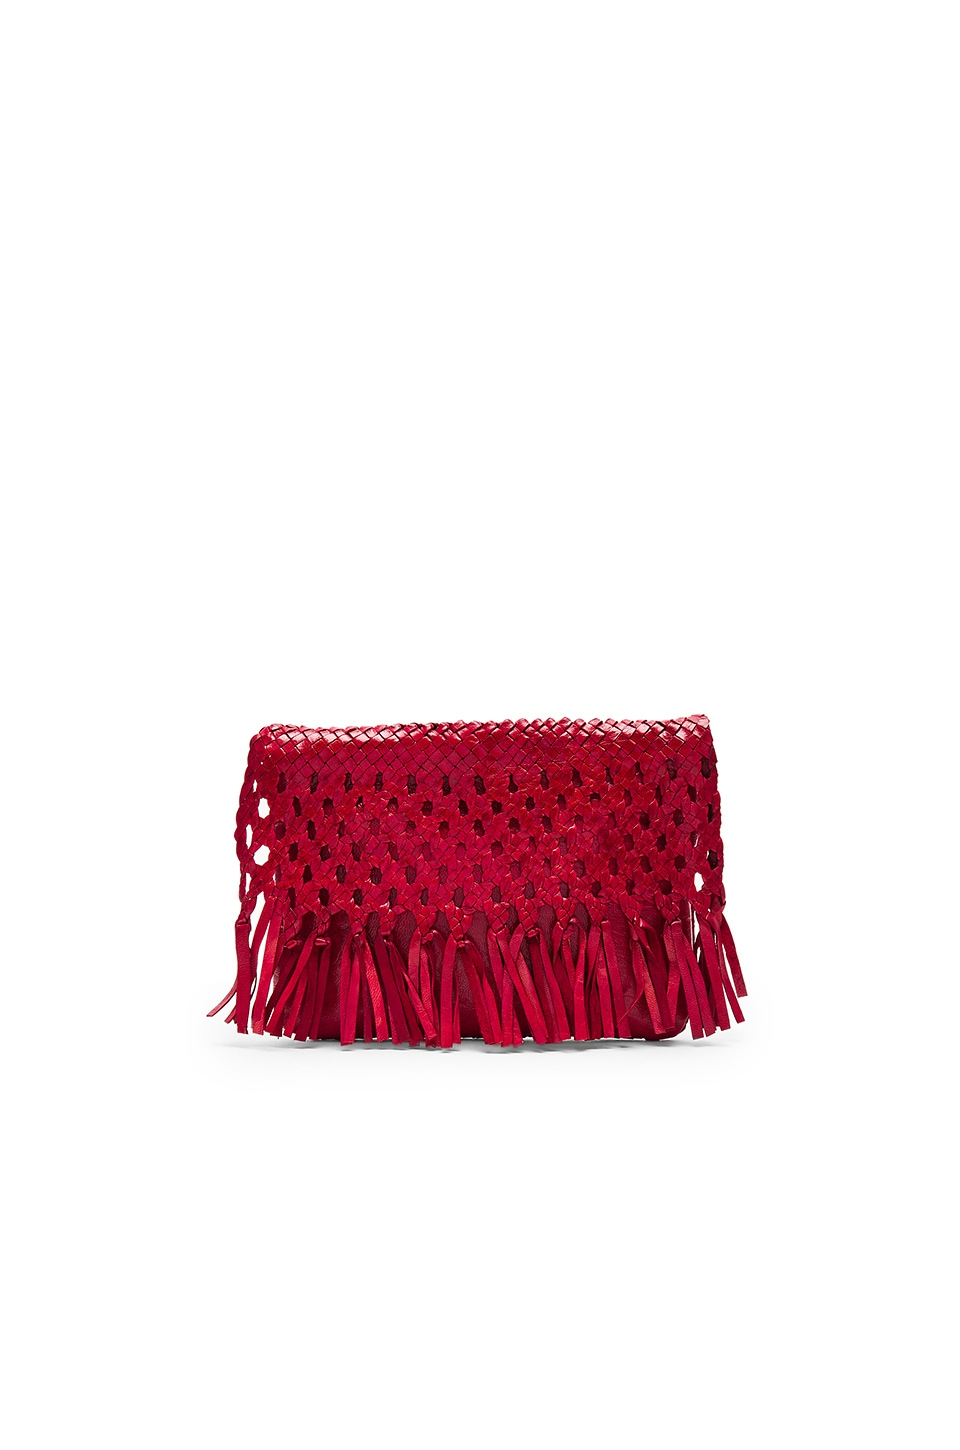 Pamela V. Junin Clutch in Red